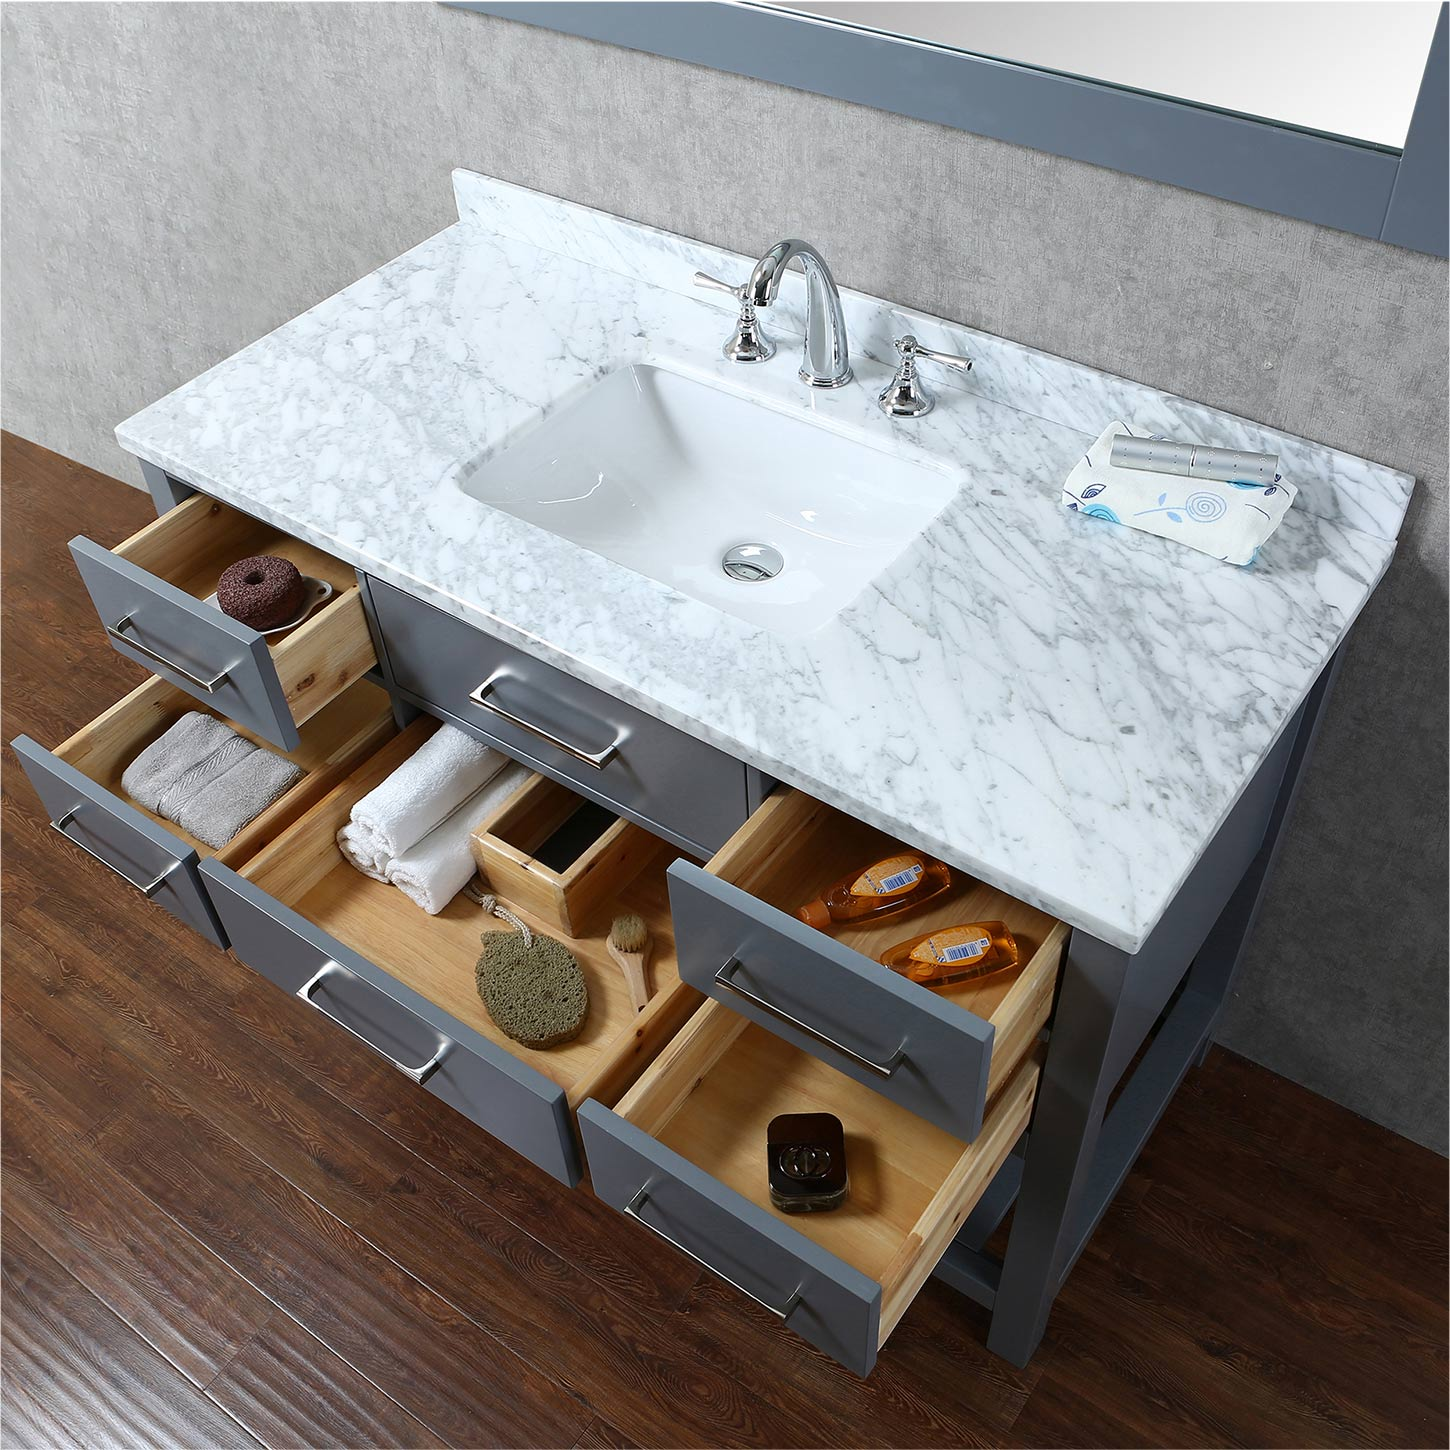 Buy Antonia Inch Solid Wood Single Bathroom Vanity In Charcoal - 48 inch grey bathroom vanity